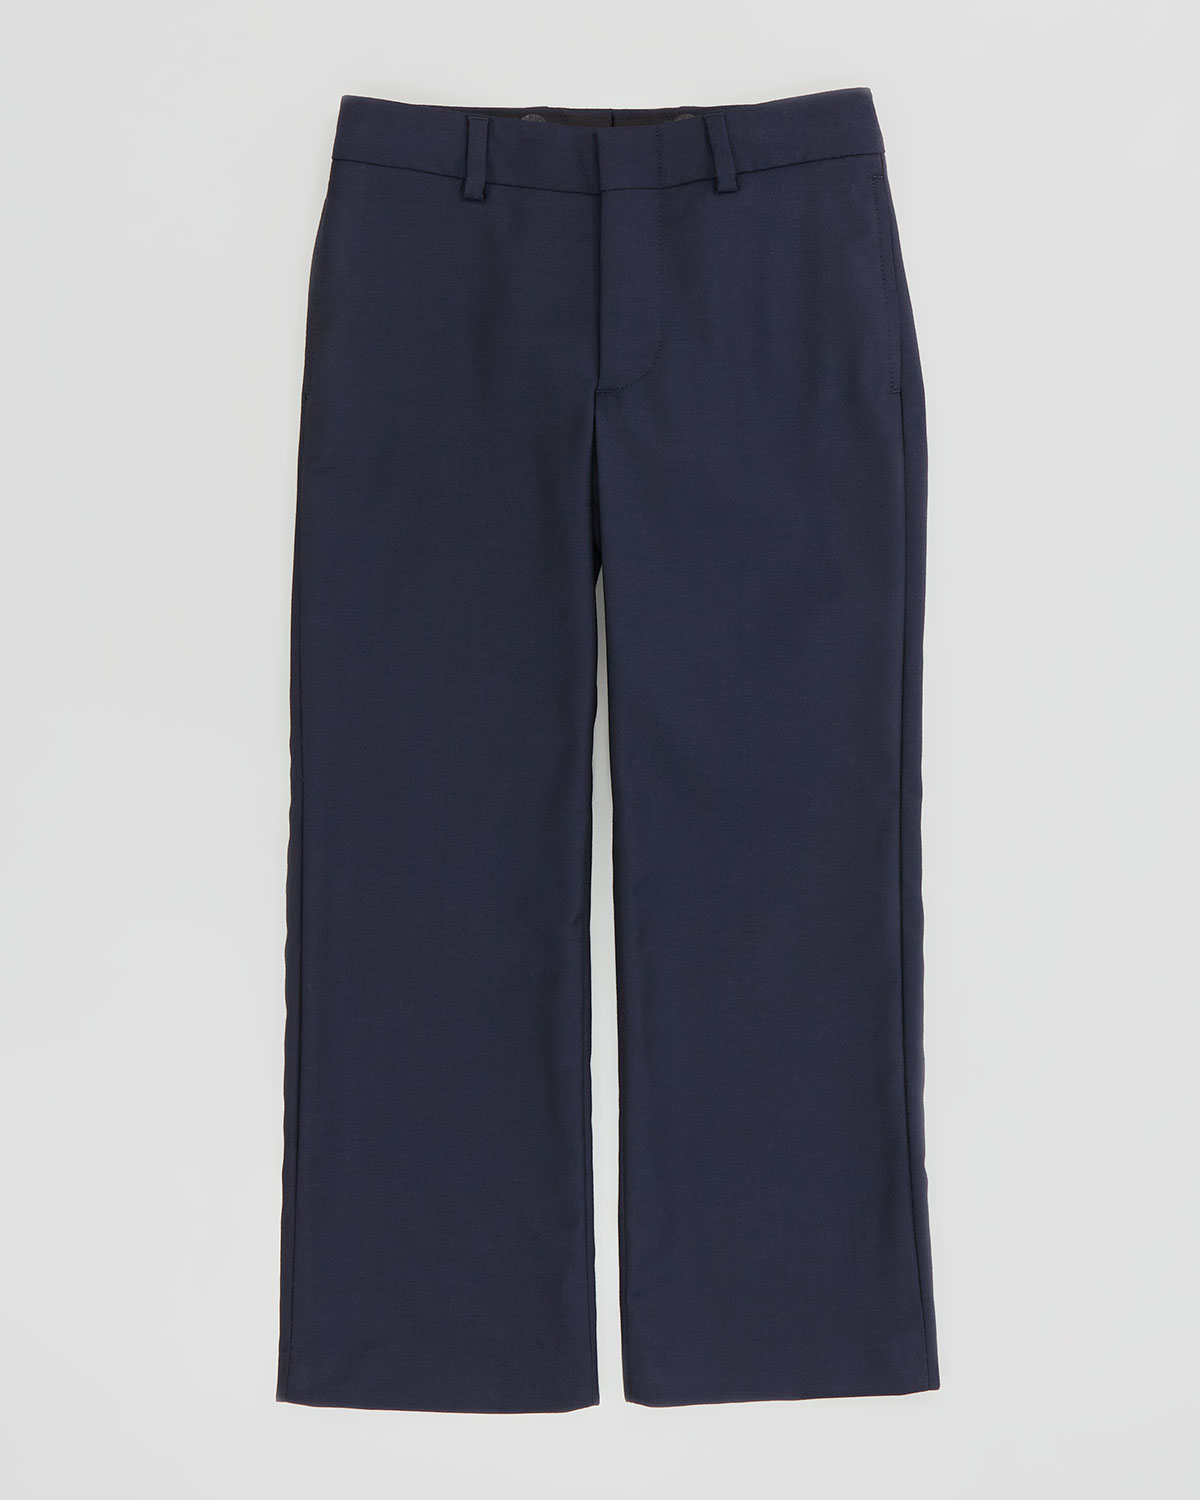 Wool Twill Flat Front Pants, Navy, Sizes 2 3   Ralph Lauren Childrenswear